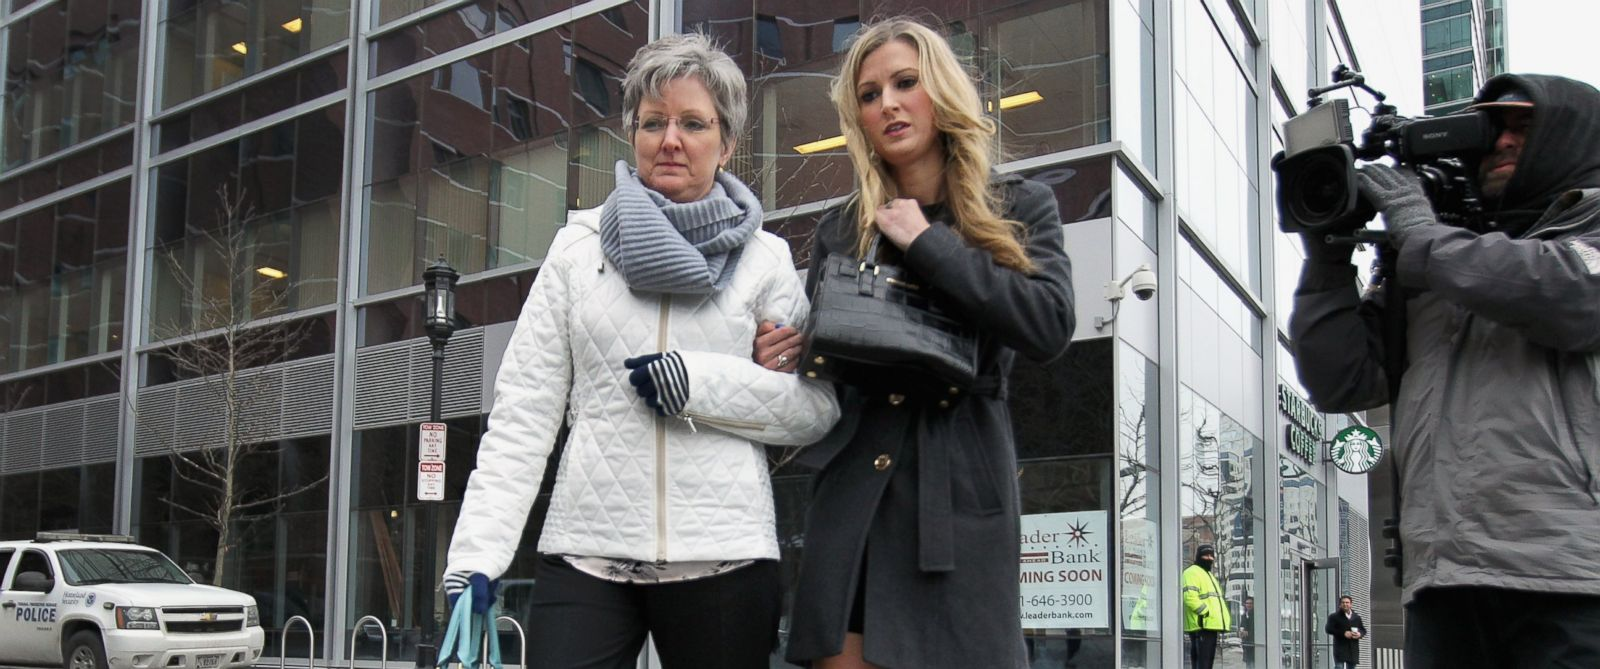 PHOTO:Boston Marathon bombing victim Rebekah Gregory, right, arrived at Moakley Federal Courthouse in Boston, where the second day in the trial of Dzhokhar Tsarnaev got underway on March 5, 2015.